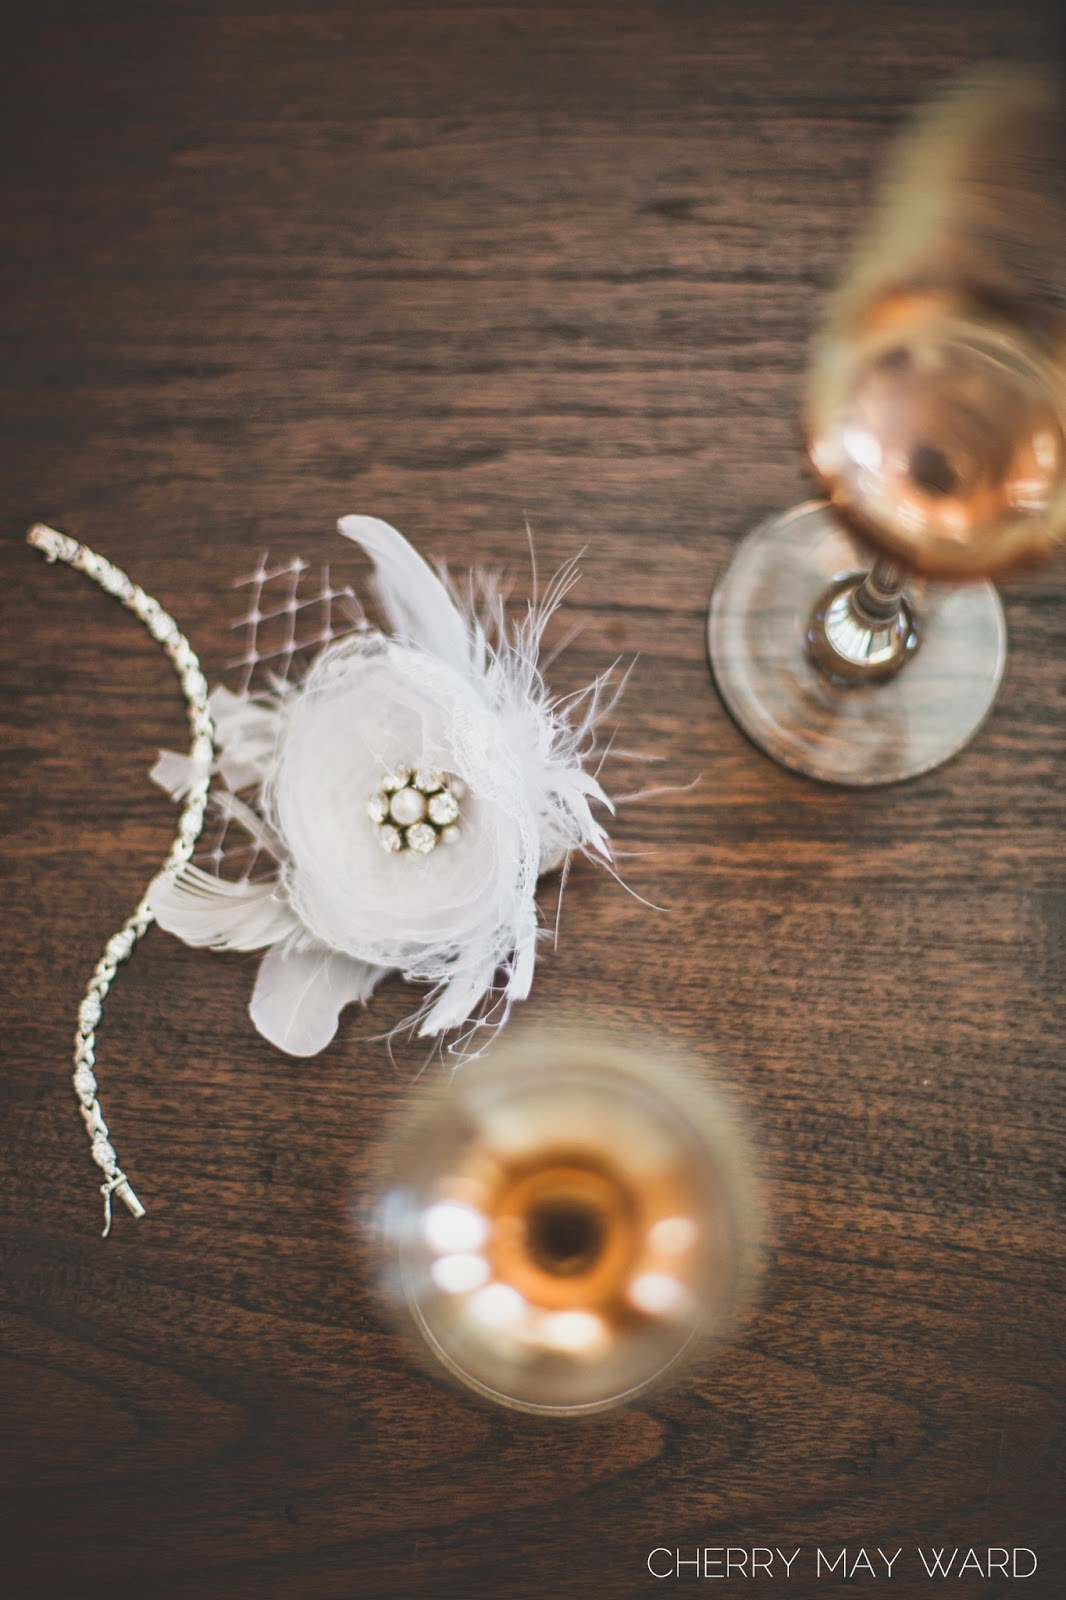 brides hair piece, Koh Samui, short hair bride, wedding details, detail photograph, sparkling wine with bracelet and hair piece